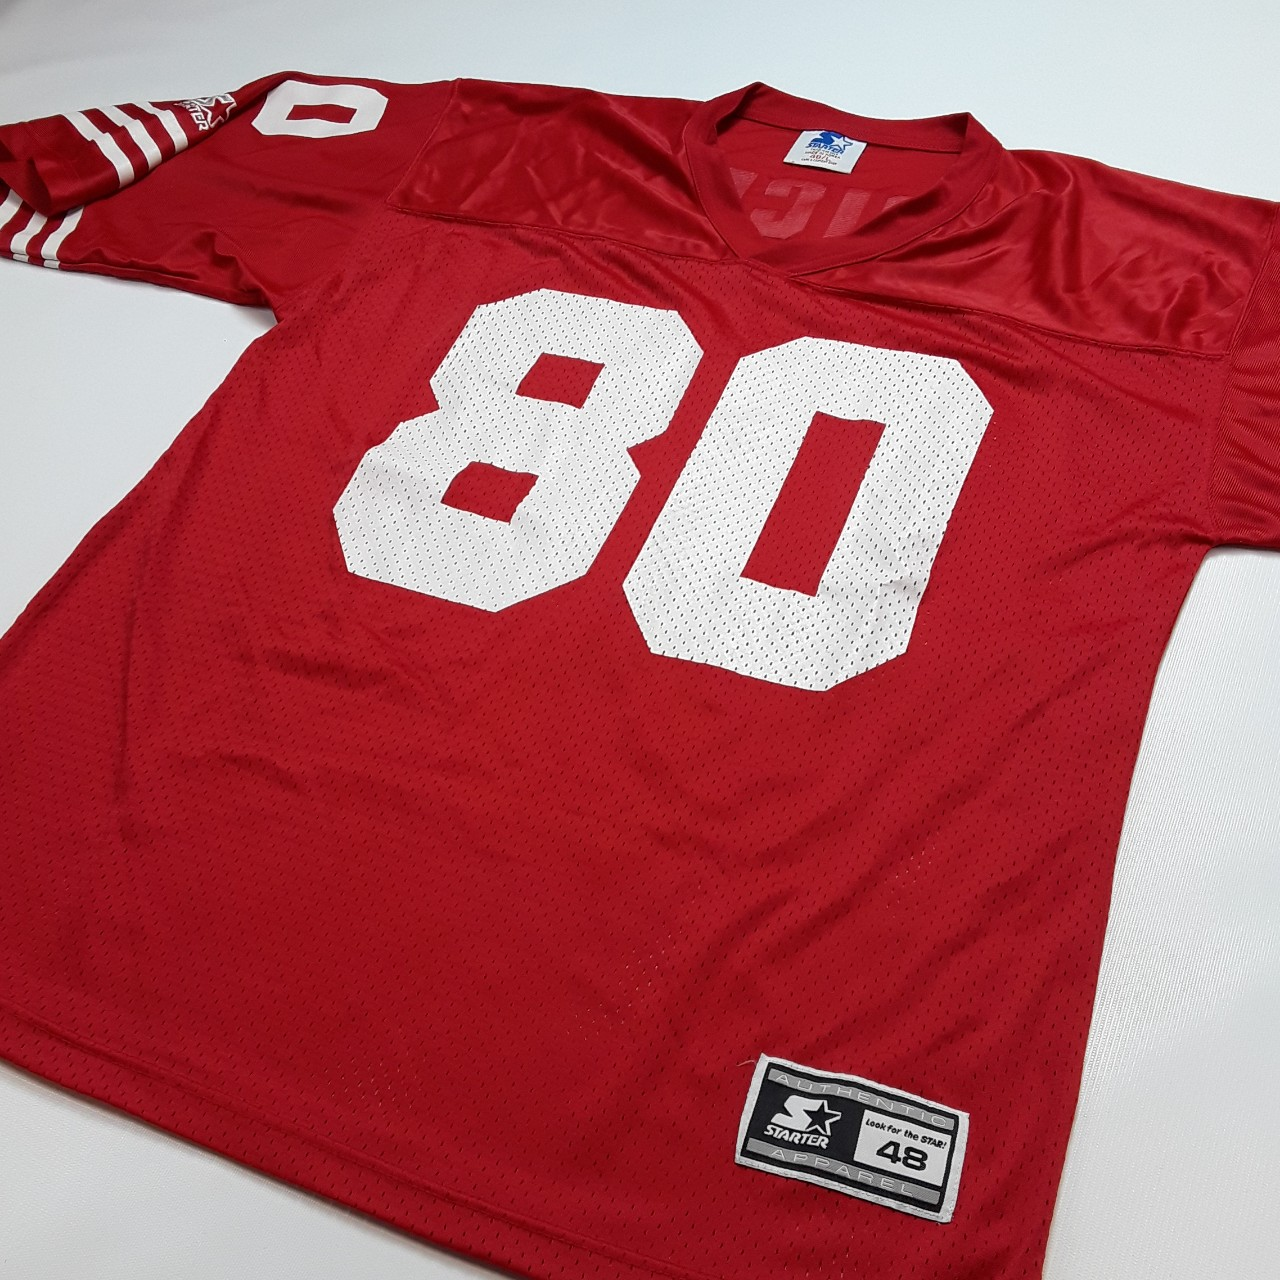 huge selection of 9e8fa 44df0 Vintage Jerry Rice Starter Jersey. San Francisco... - Depop